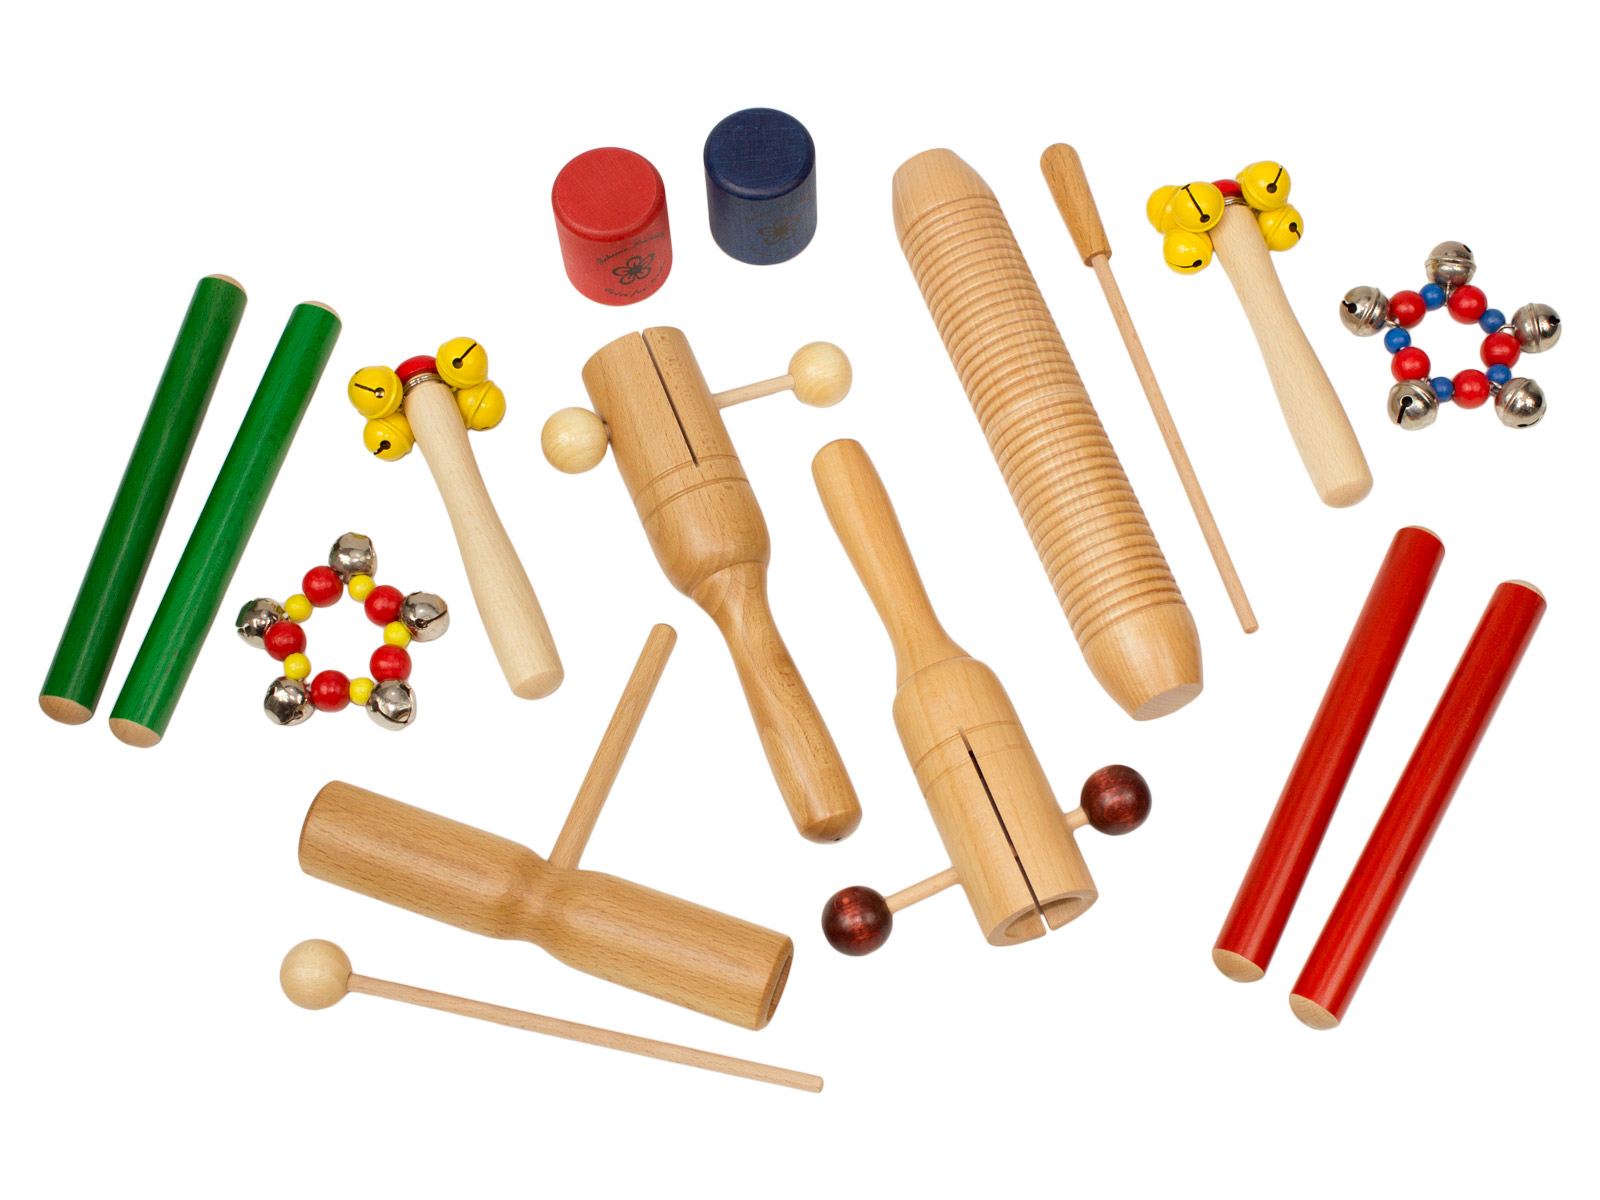 KIDS PERCUSSION SET - 12 INSTRUMENTS - 3+